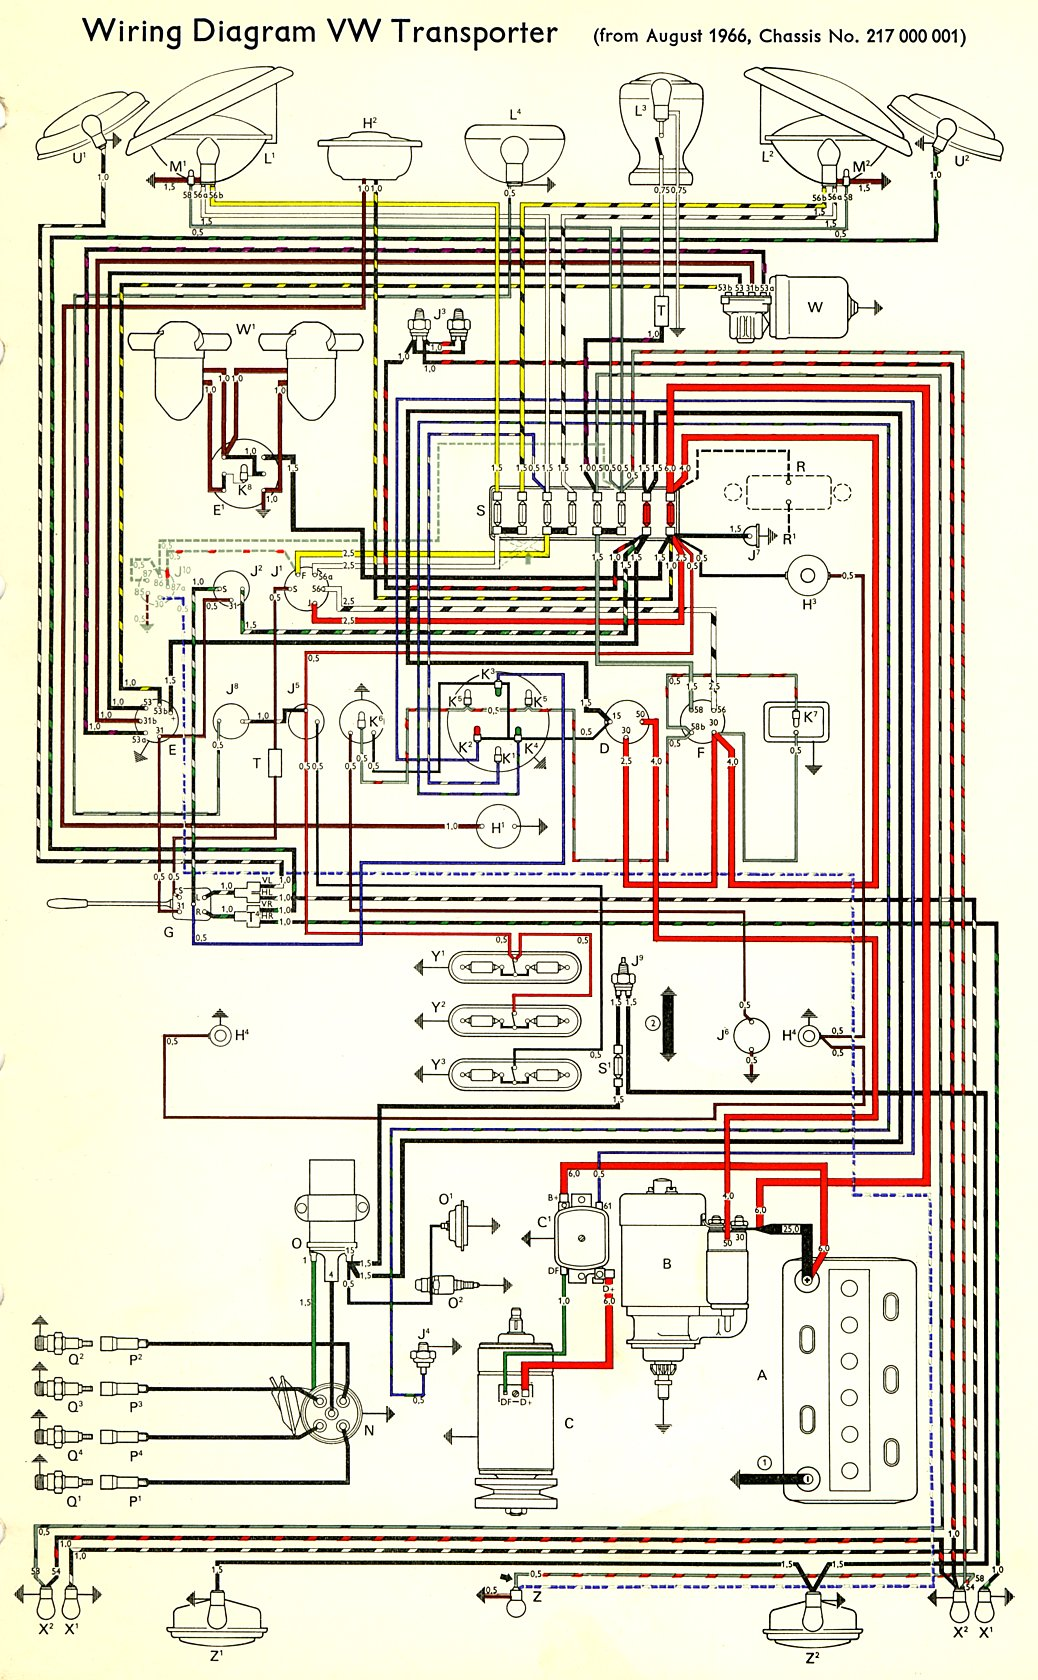 bus_67 1967 bus wiring diagram thegoldenbug com 1957 vw bug wiring diagram at edmiracle.co